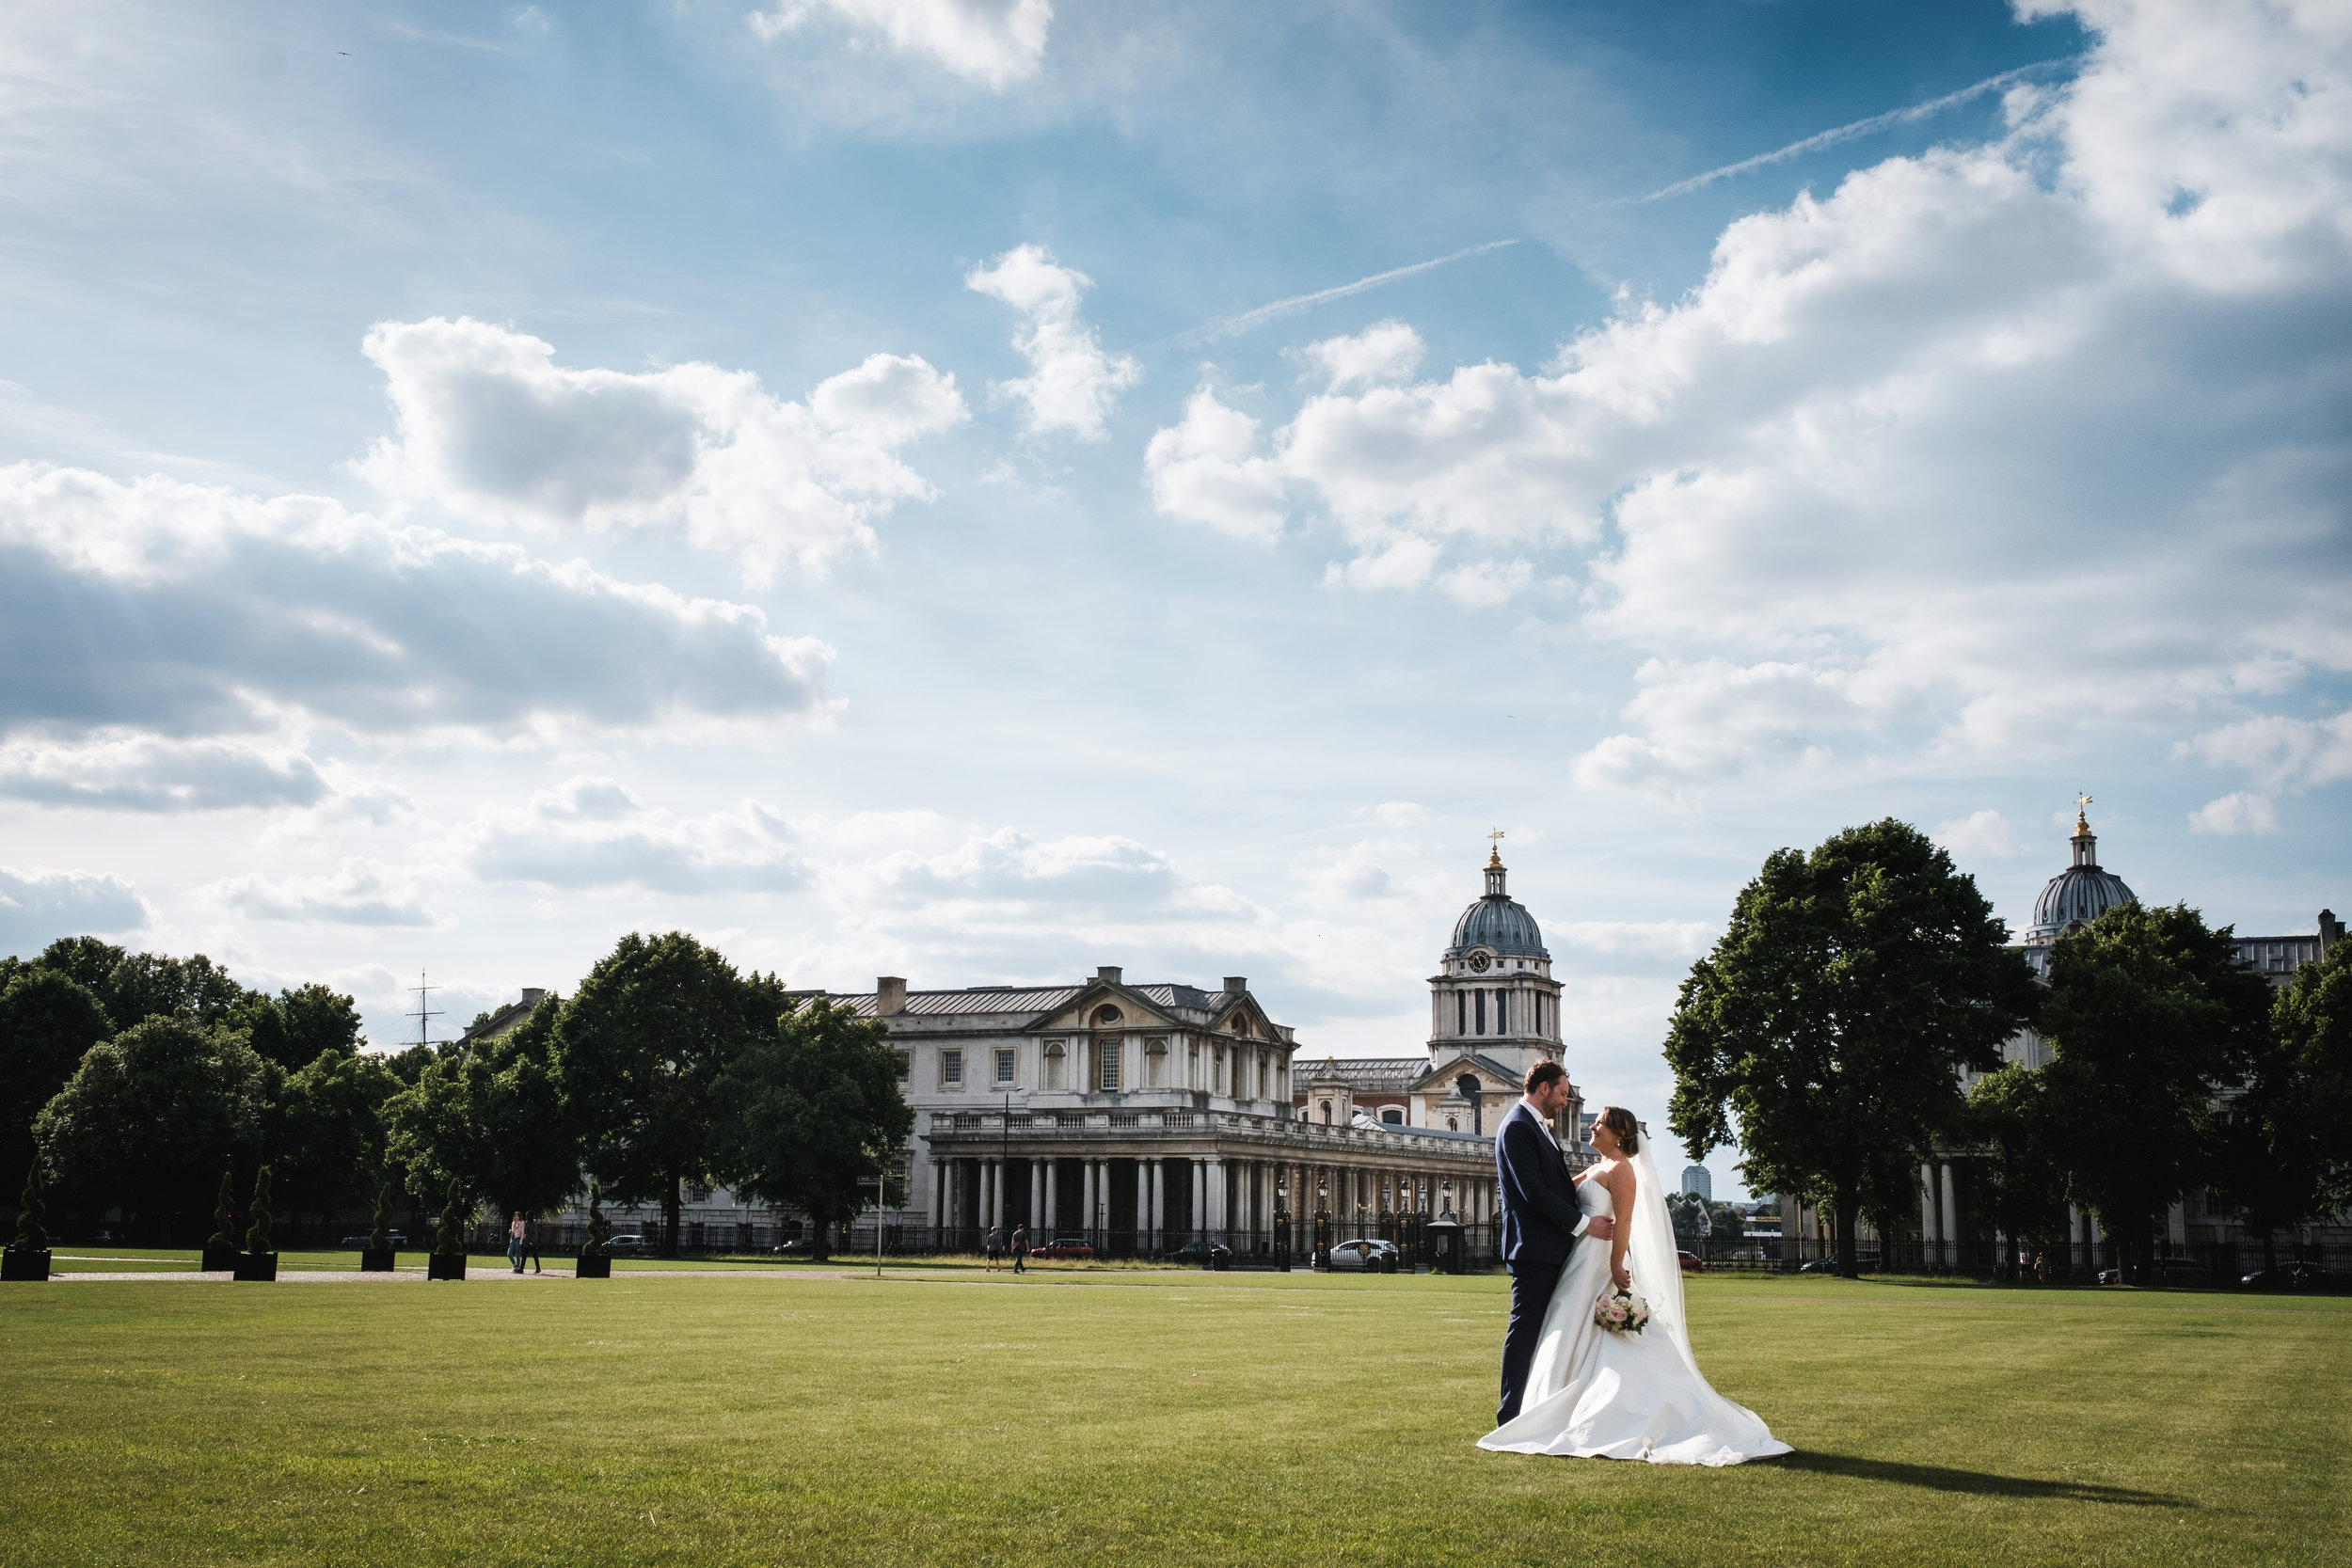 335_langlands-greenwich.jpg